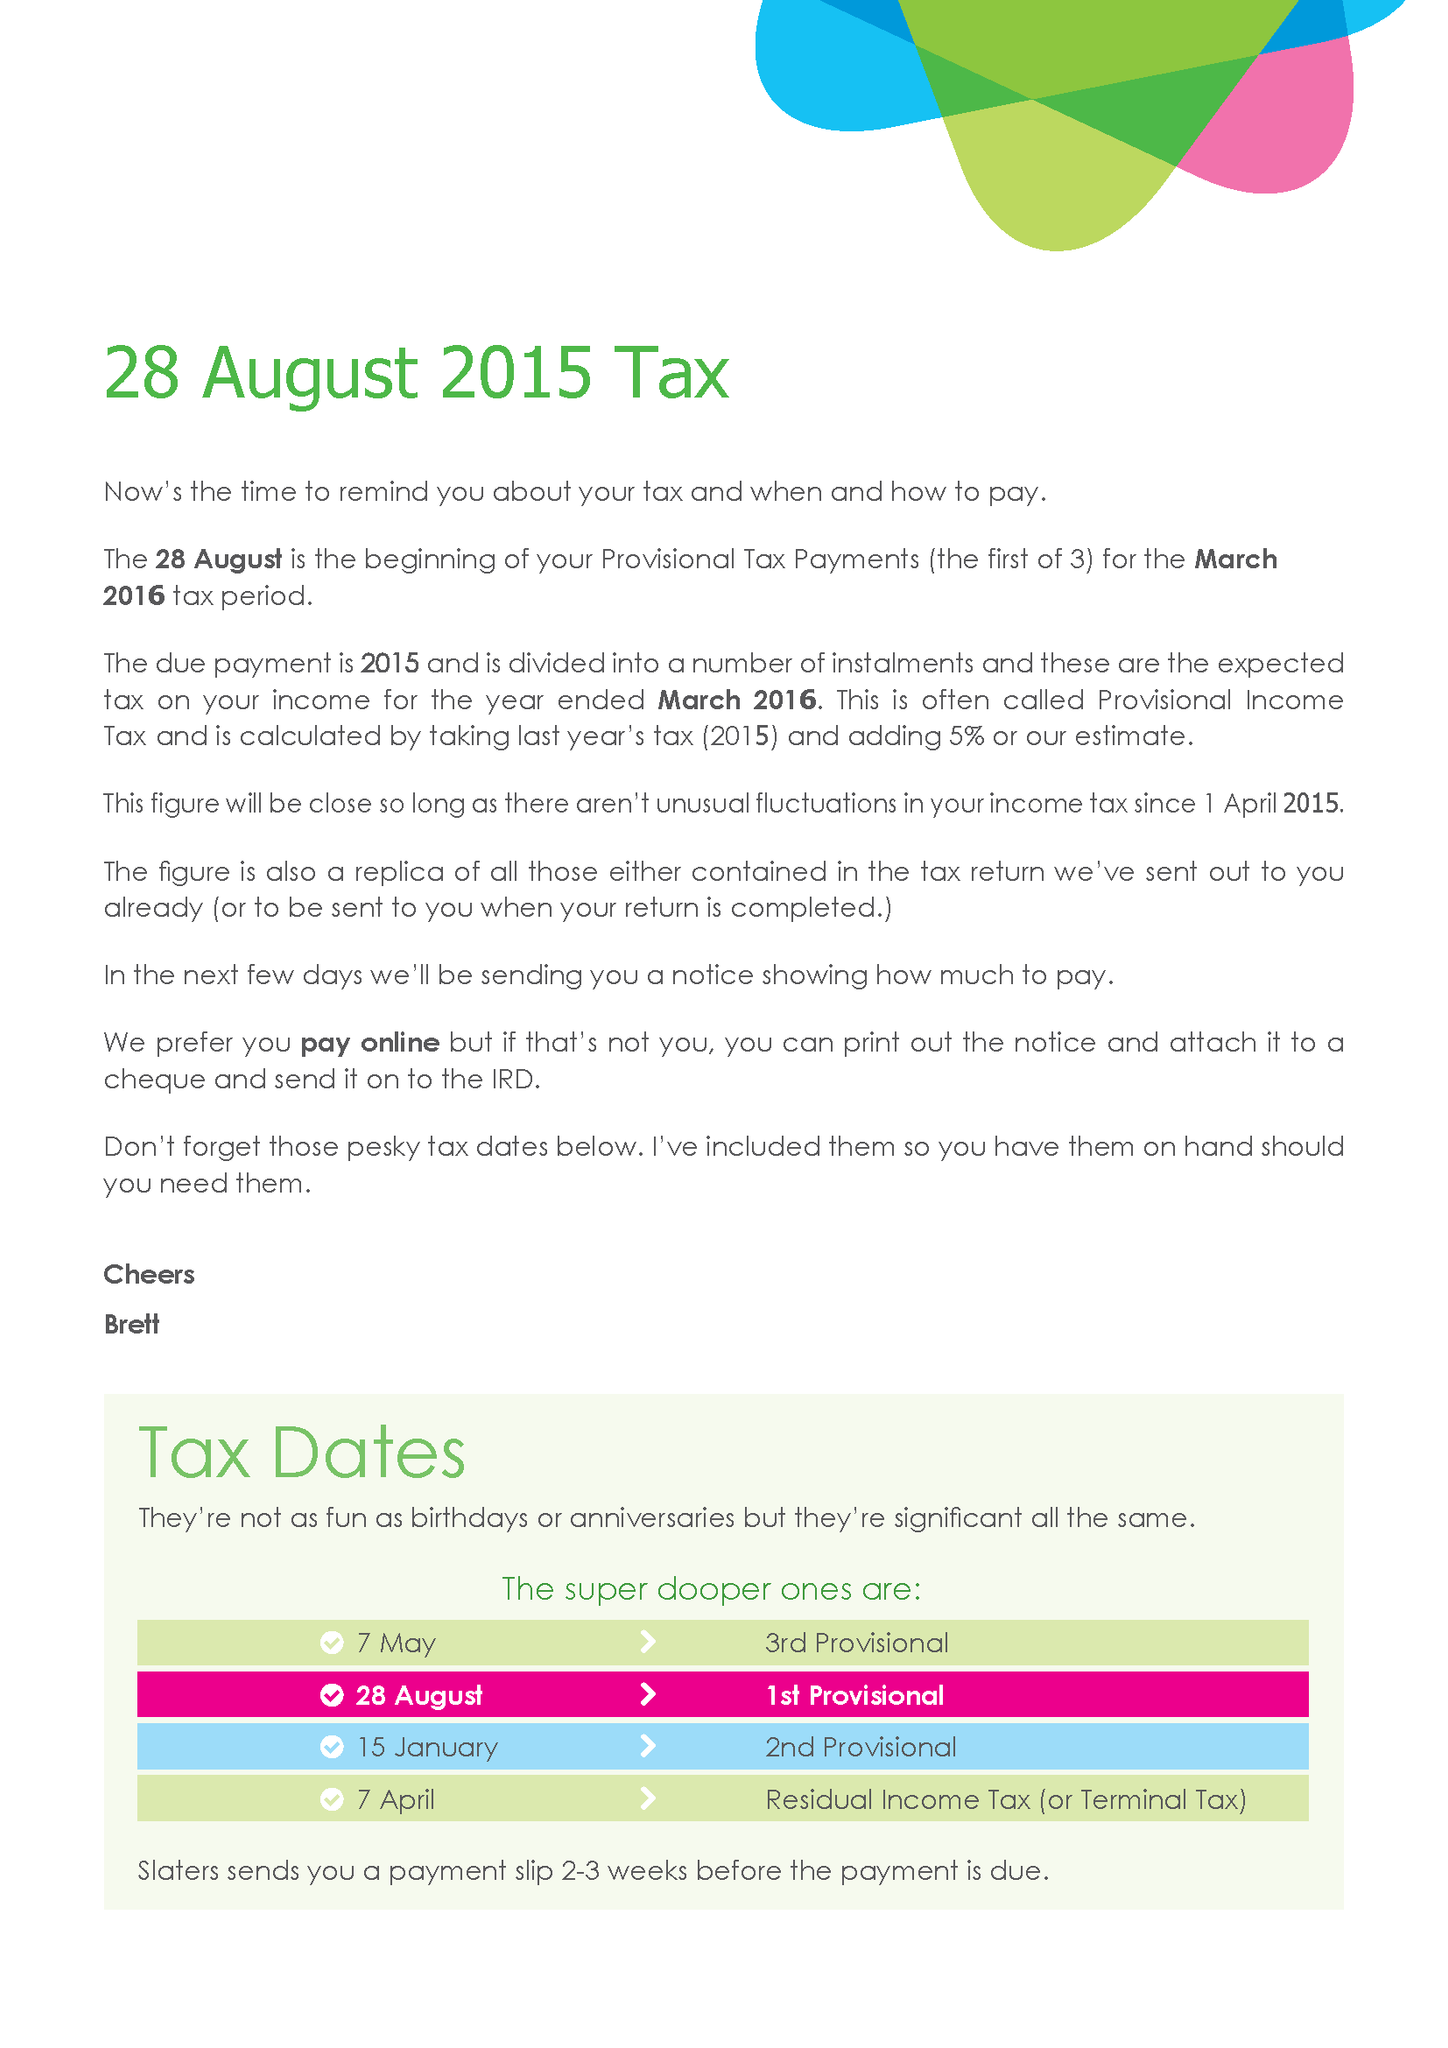 28 Aug 1st Prov Tax Slaters p.3